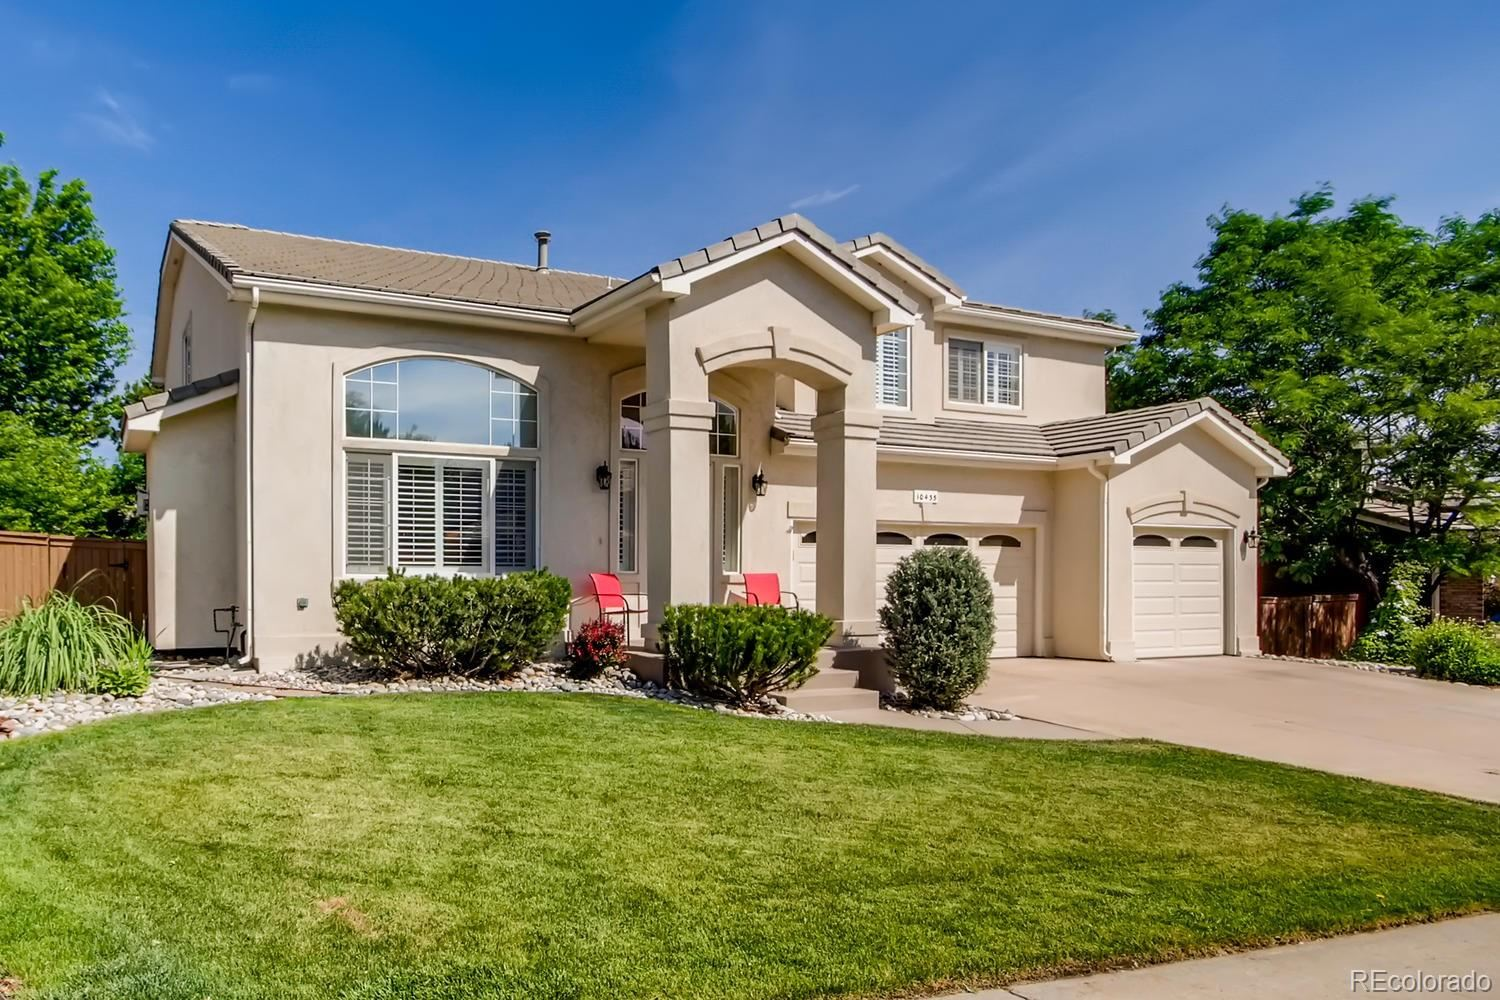 10435 Colby Canyon Drive, Highlands Ranch, CO 80129 - #: 5222113